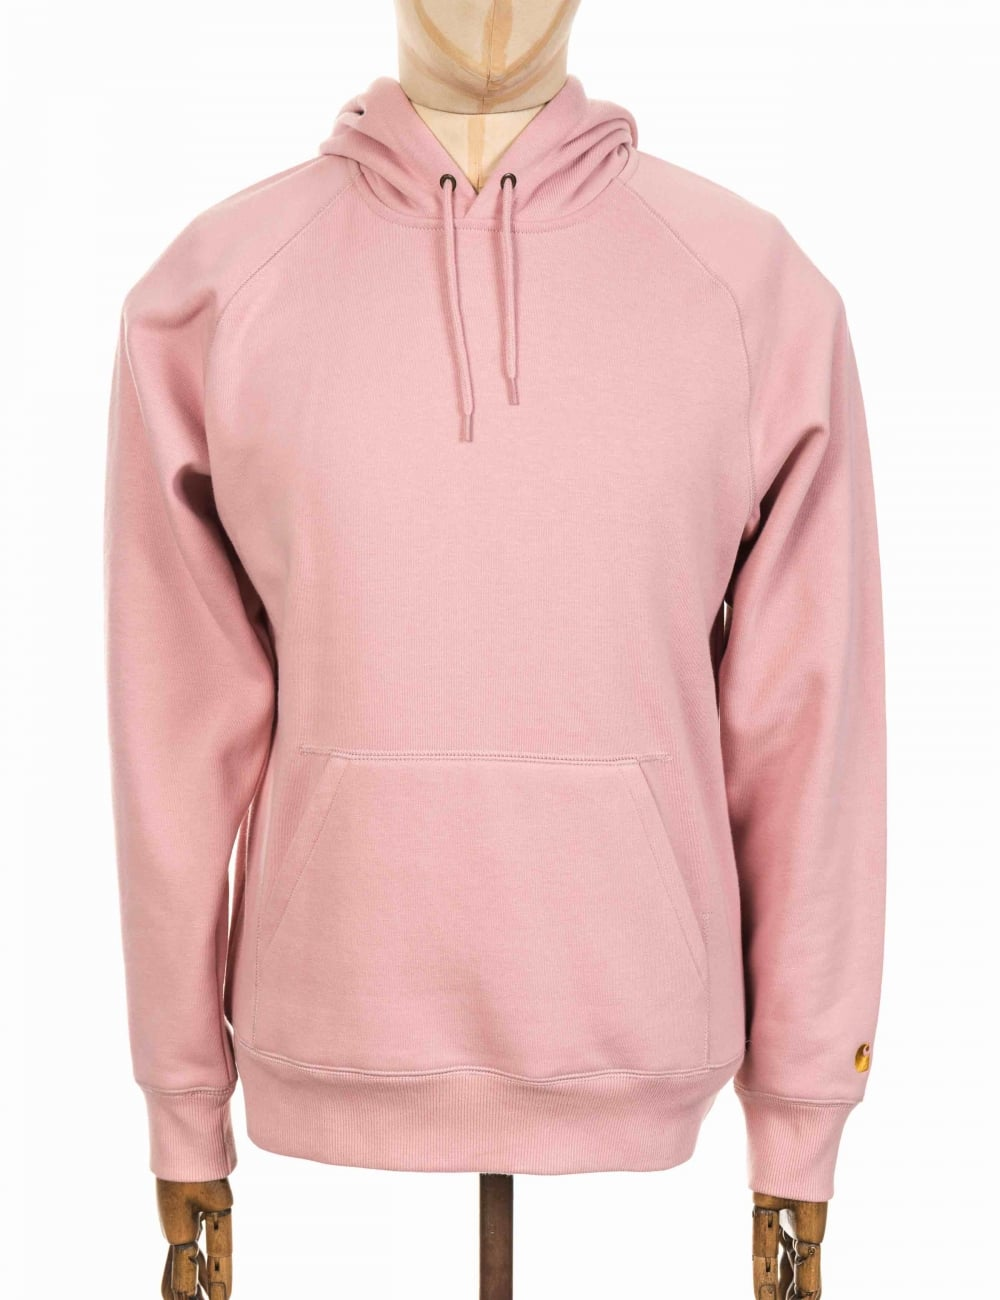 113ef26252934 Carhartt WIP Hooded Chase Sweatshirt - Soft Rose - Clothing from Fat ...